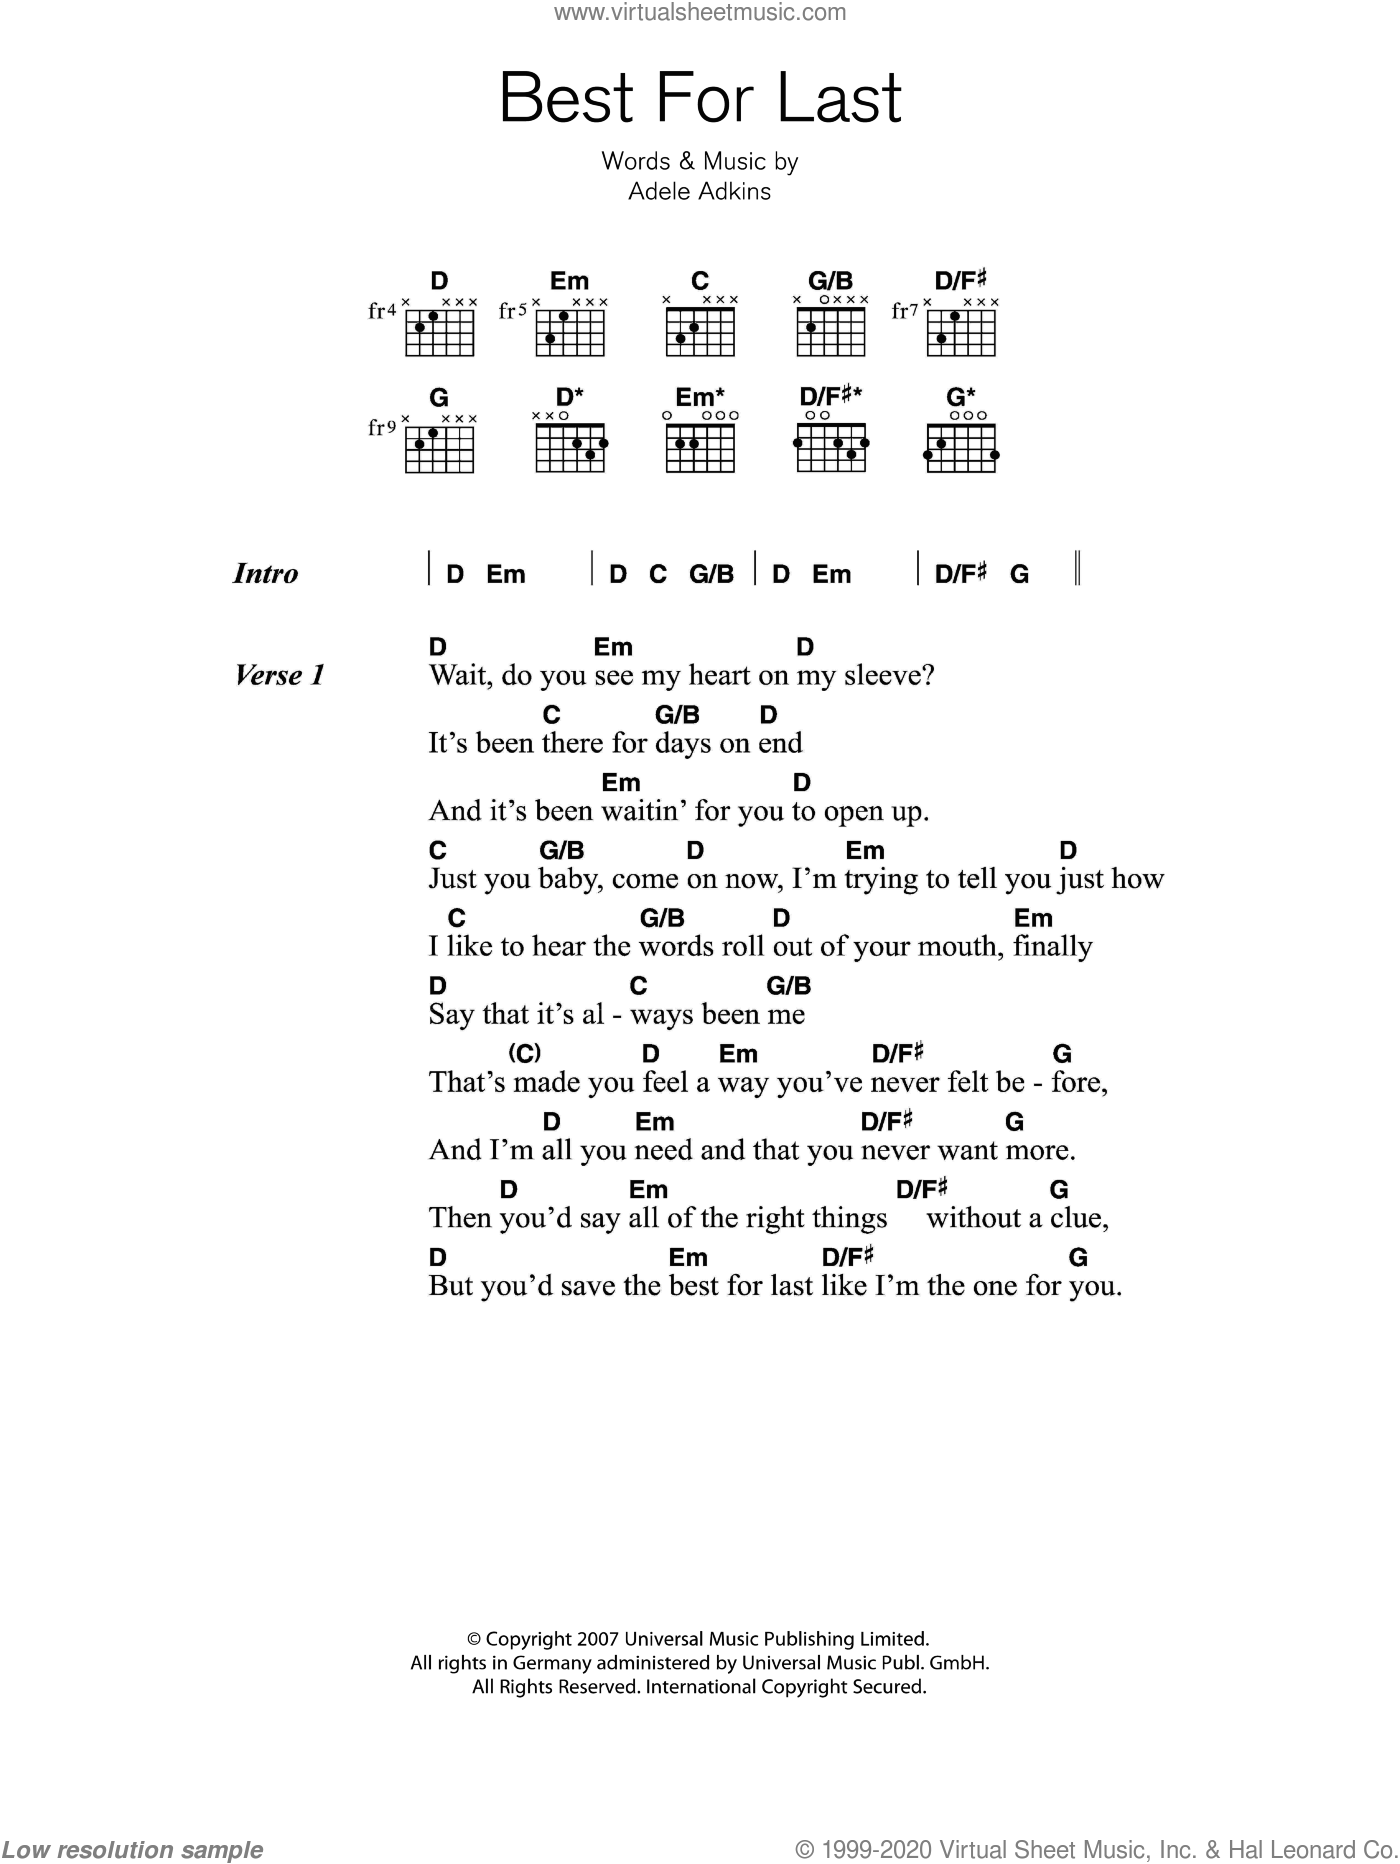 Best For Last sheet music for guitar (chords) by Adele and Adele Adkins, intermediate skill level